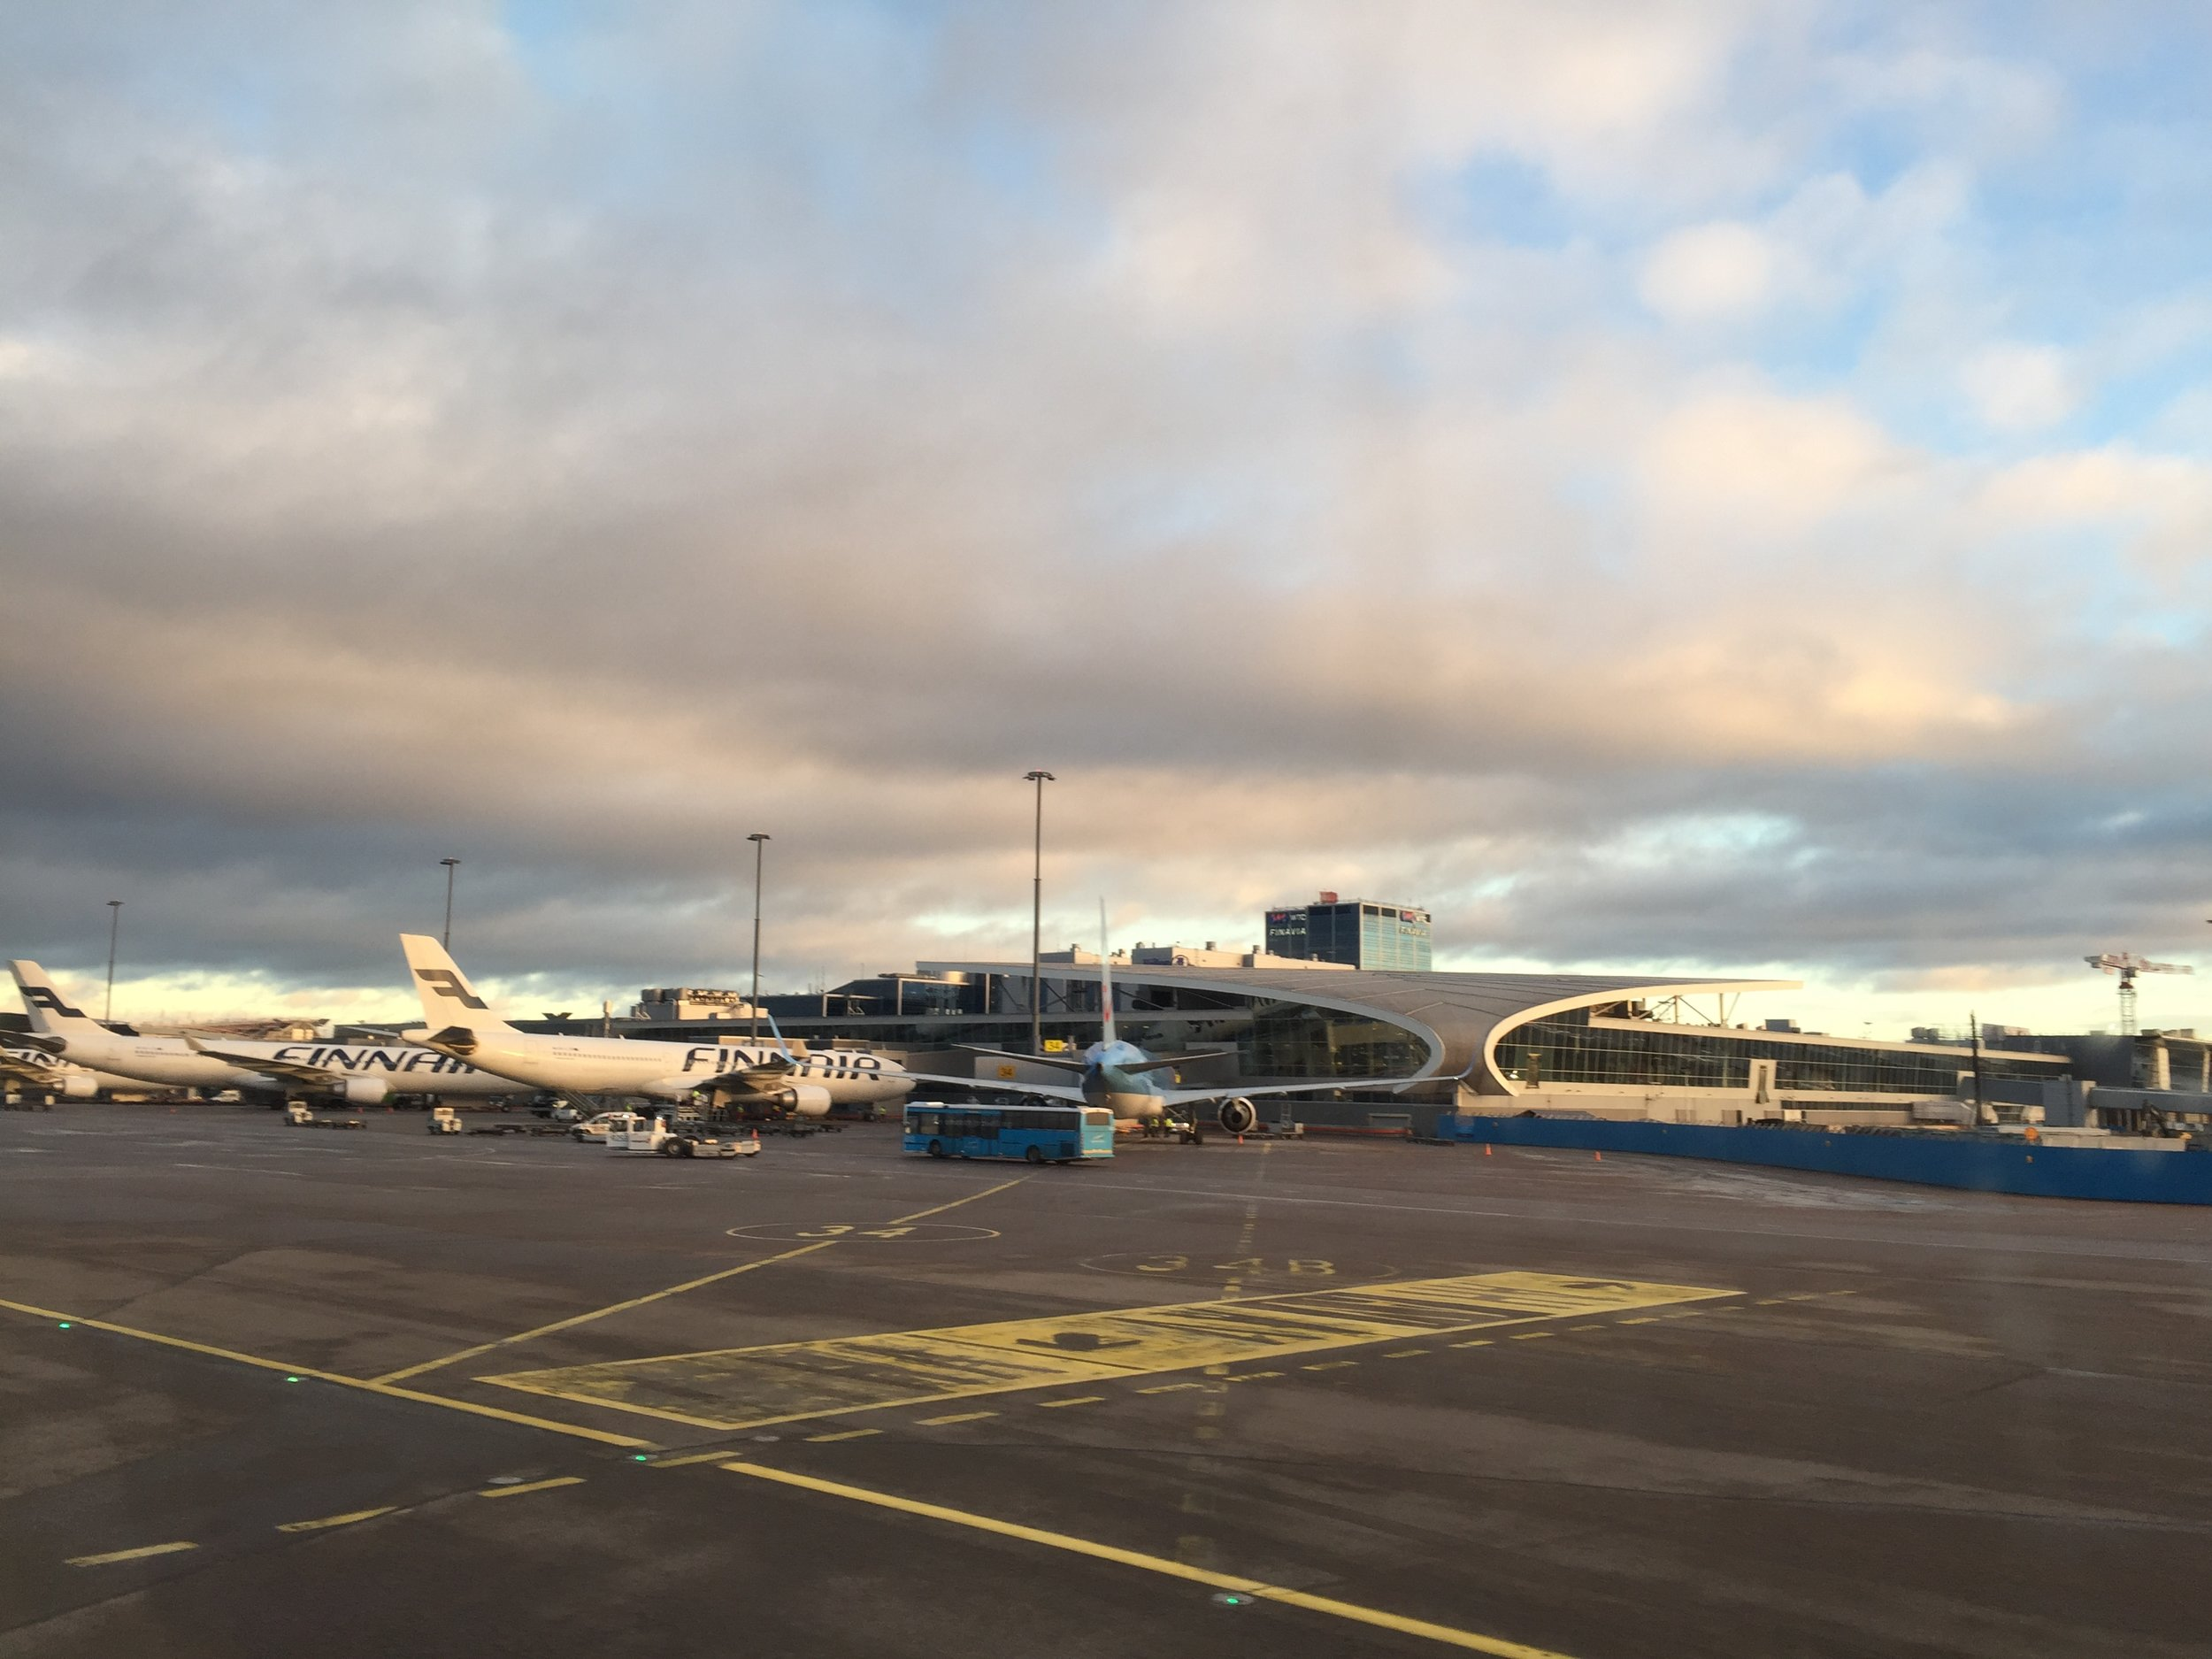 Helsinki airport has all facilities under one roof